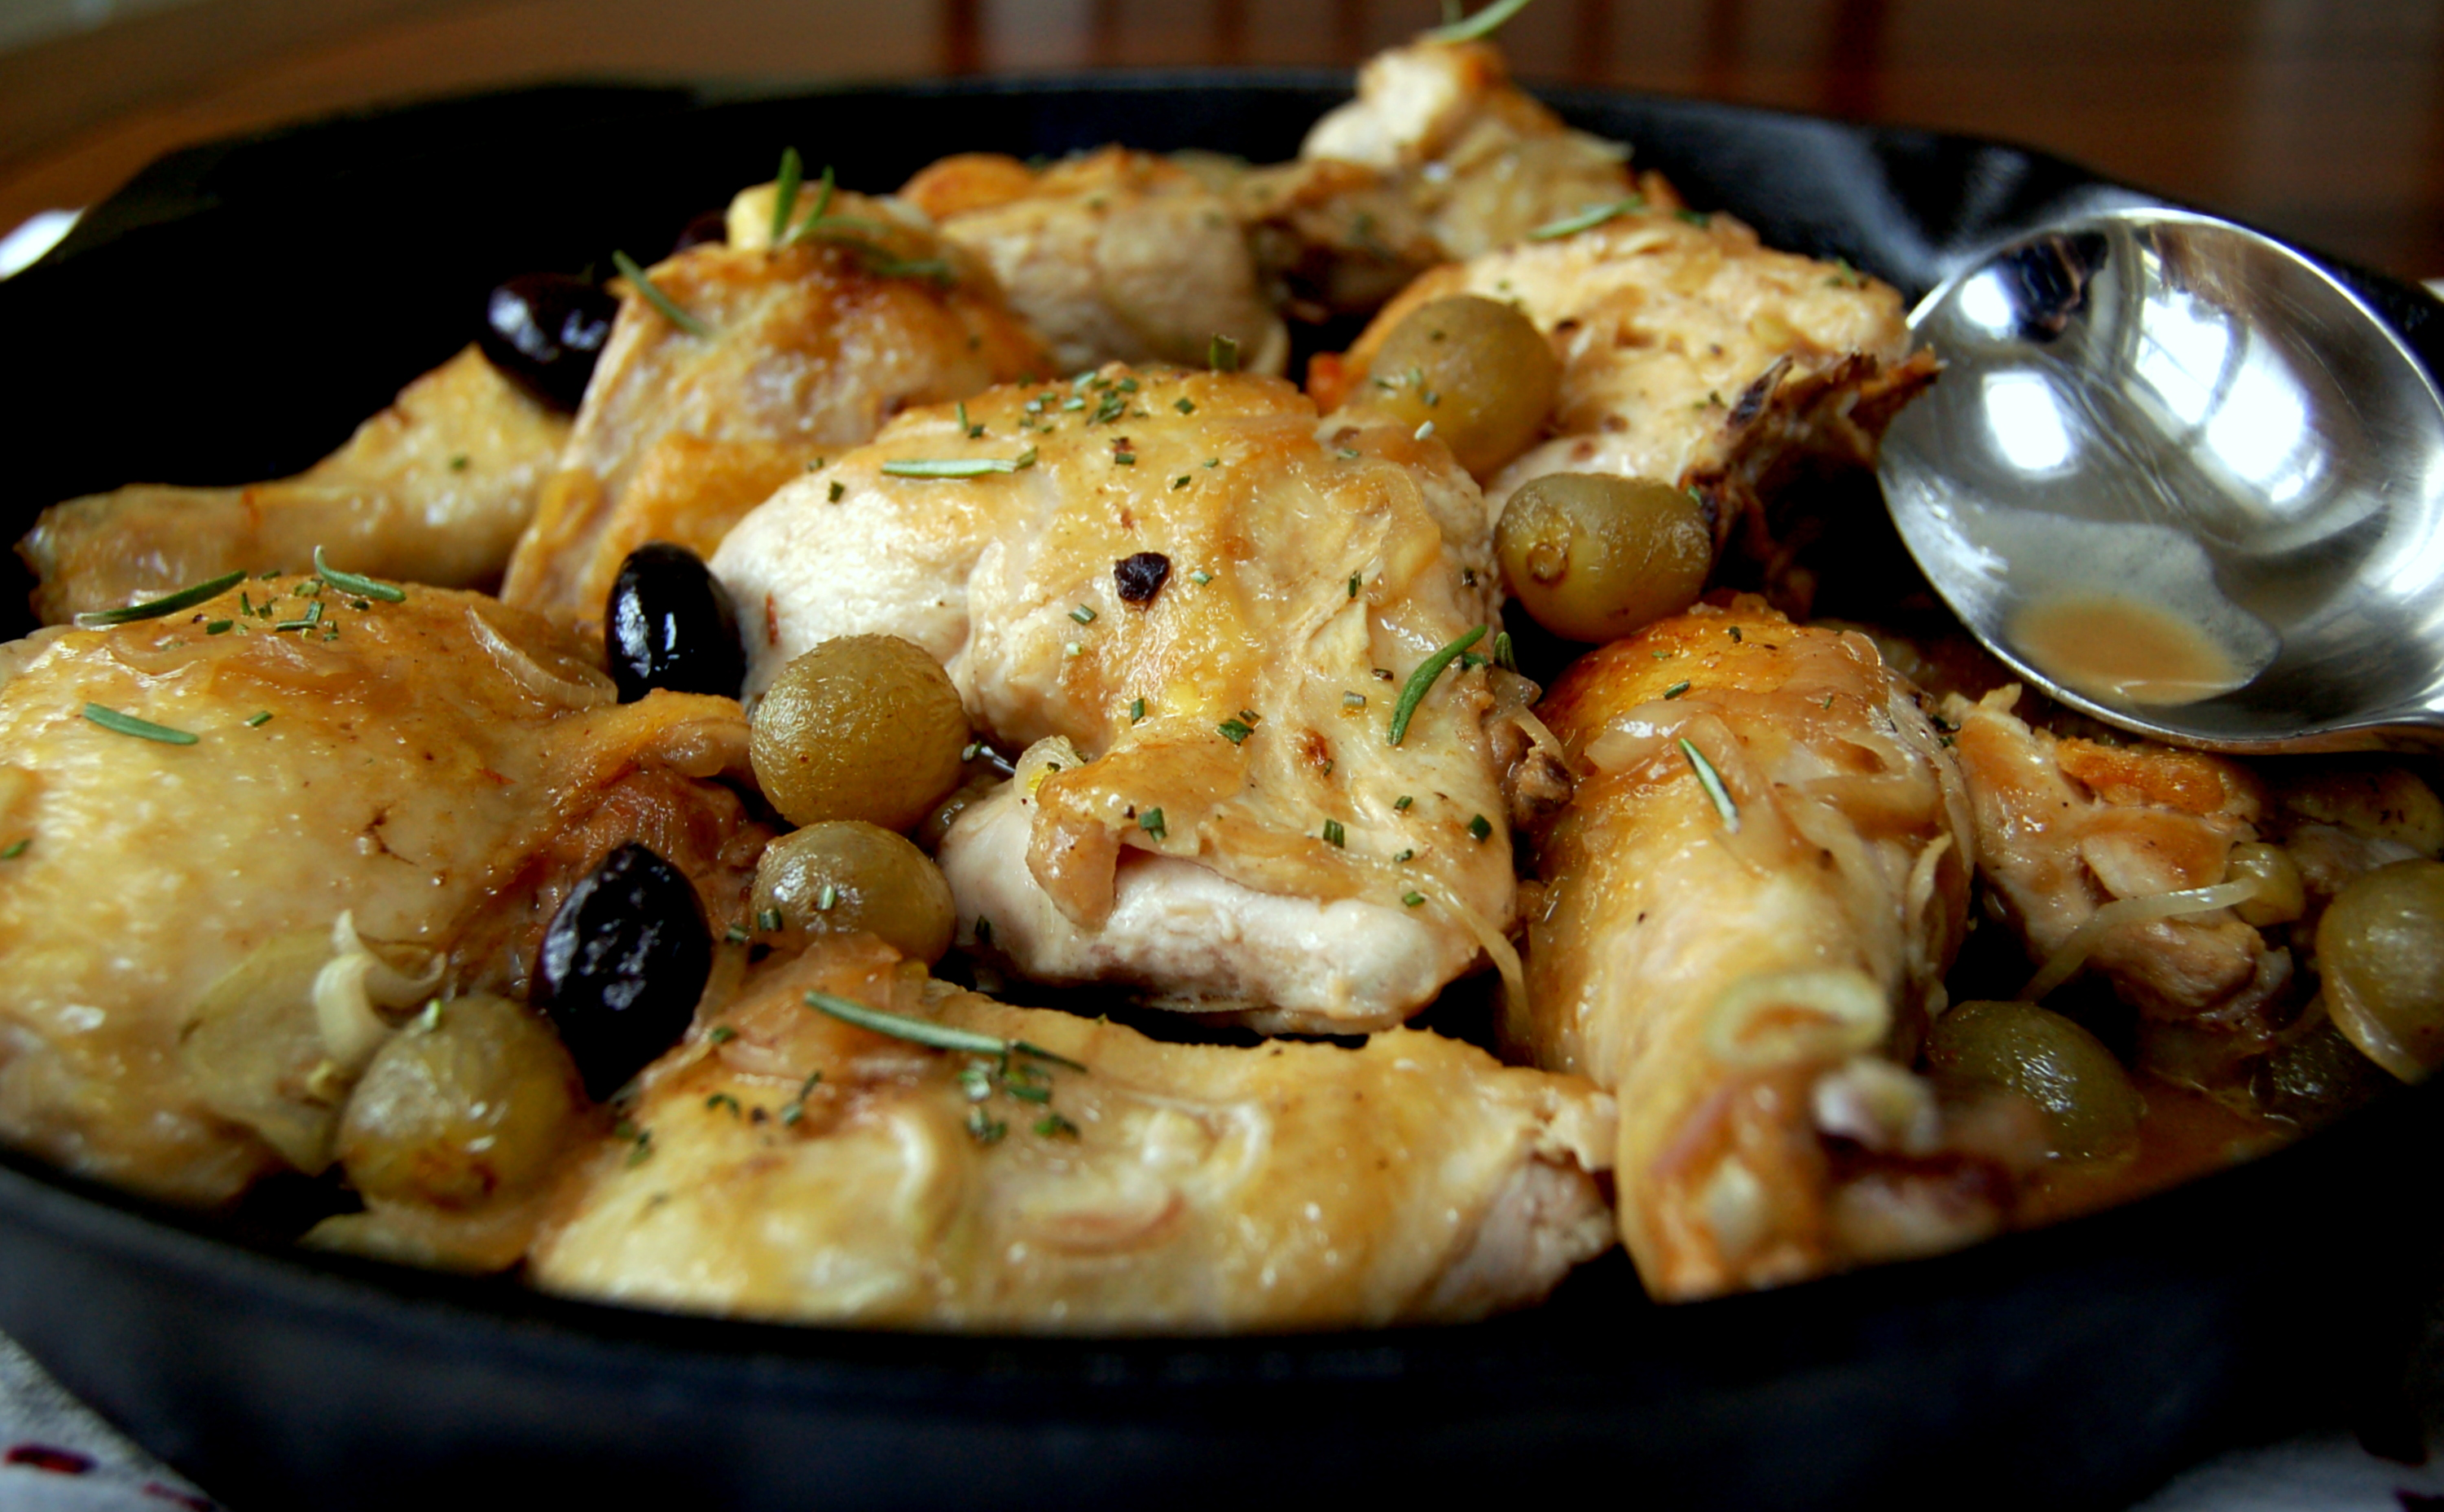 Pan Roasted Chicken with Olives and Grapes | One Family Meal